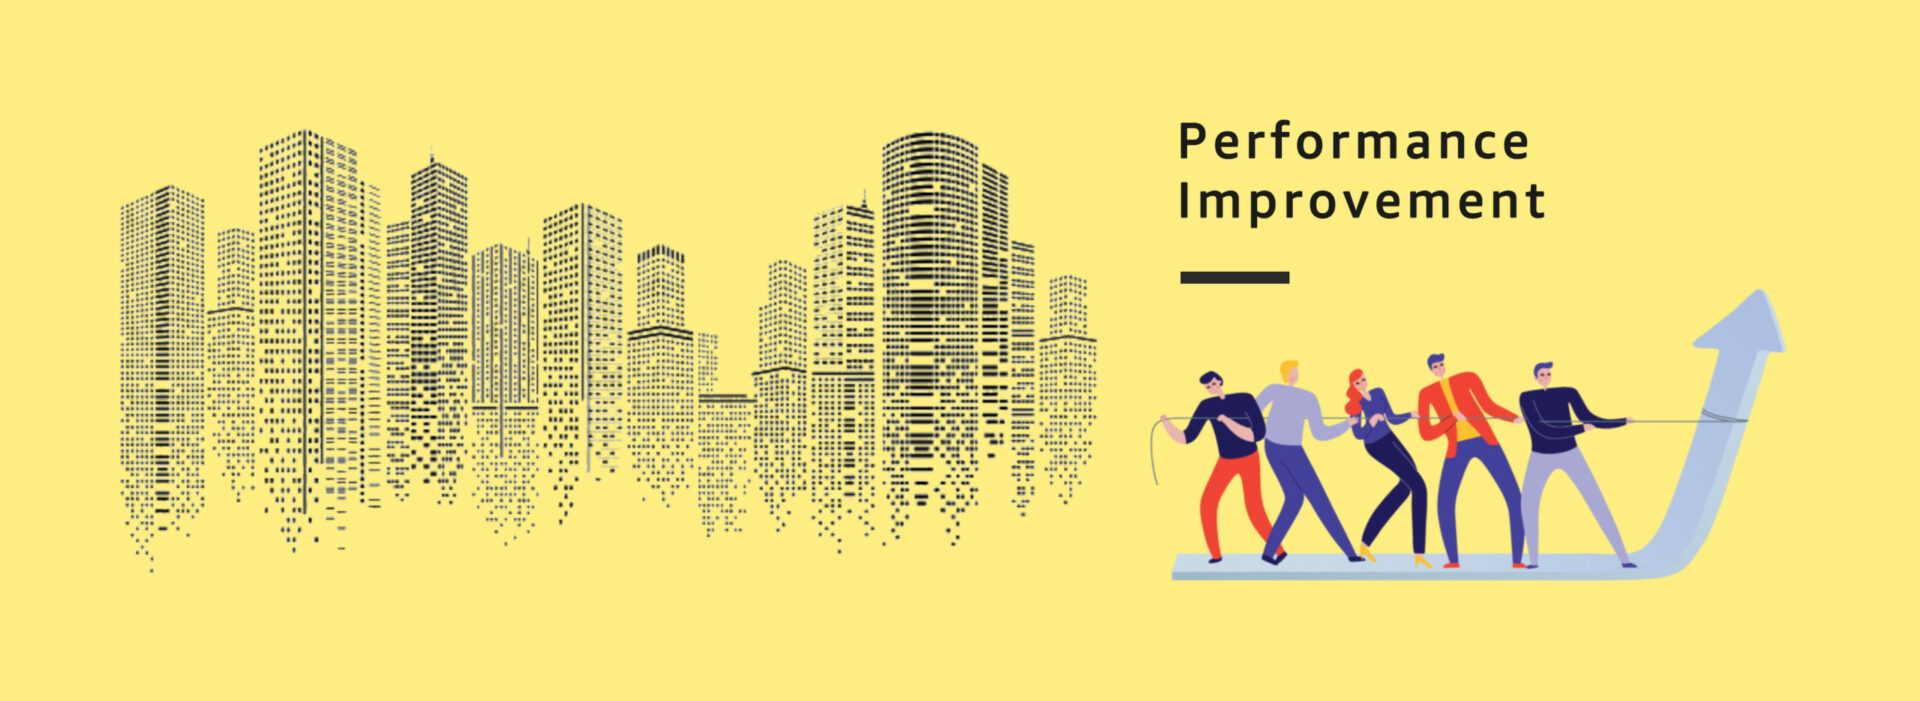 Truth About Performance: Helping Managers Improve Performance